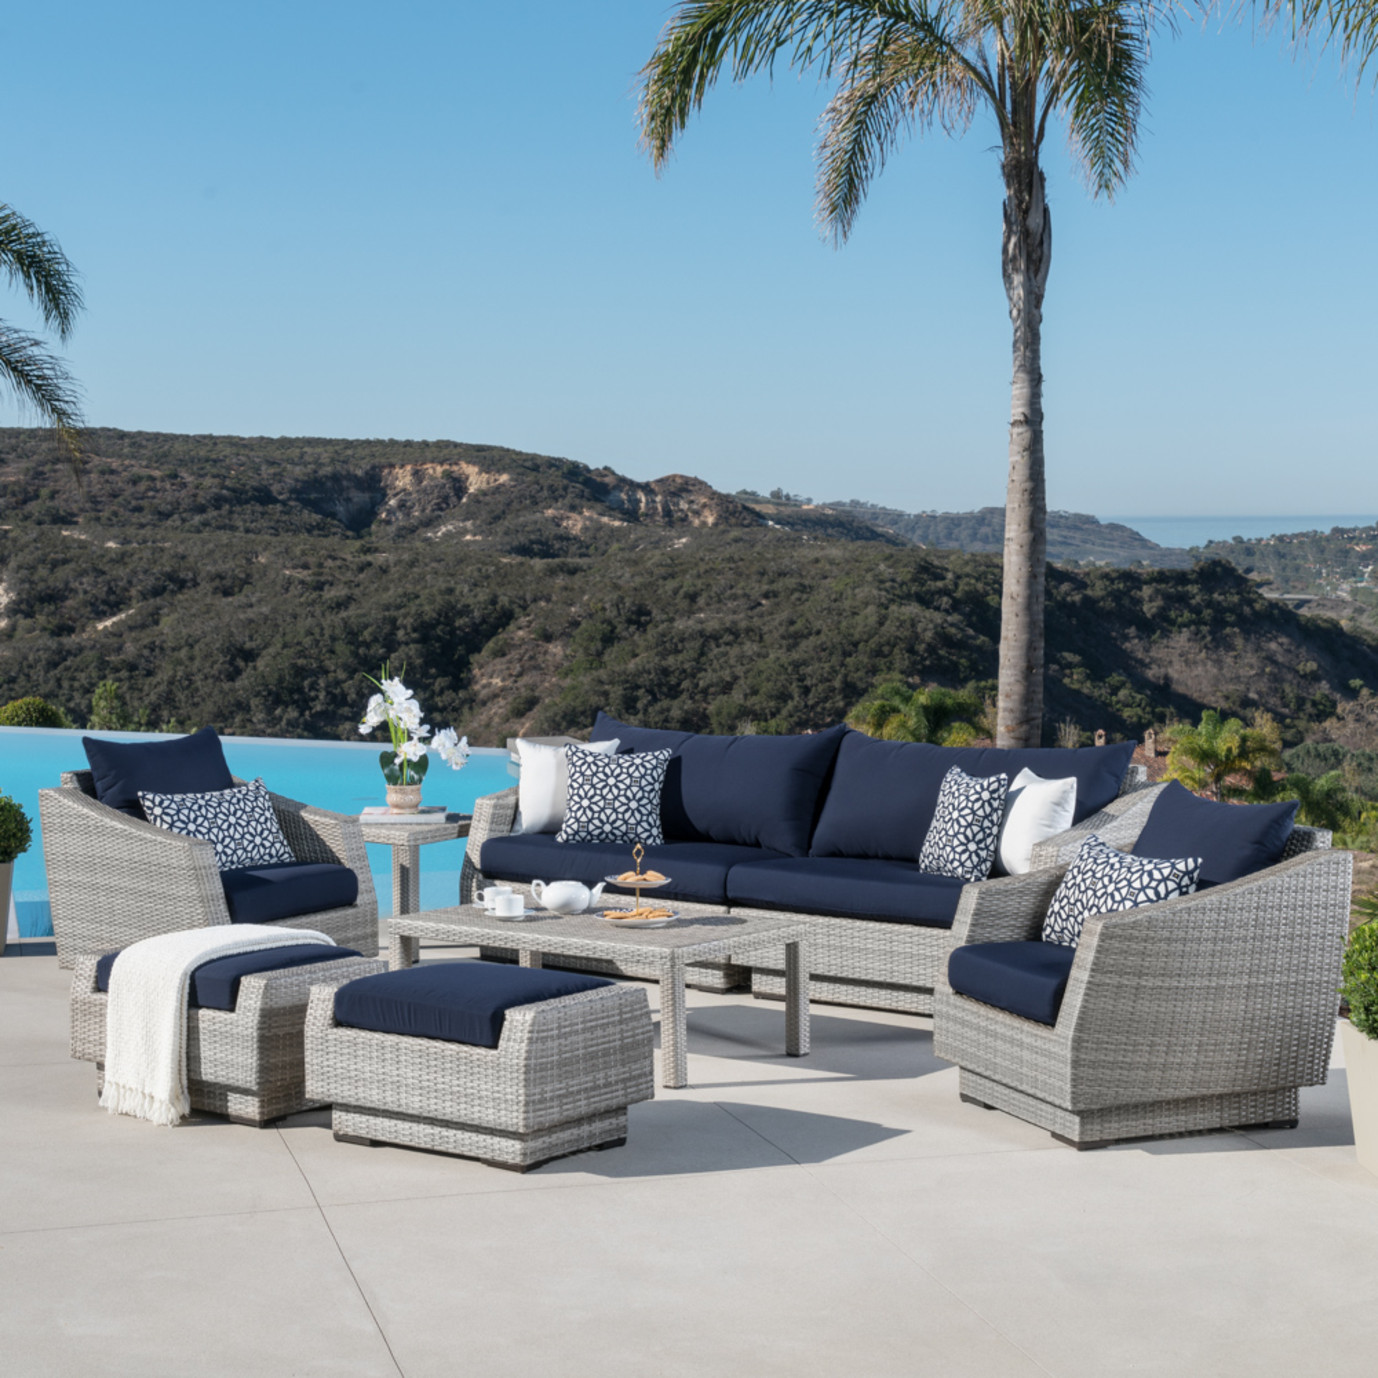 Cannes™ 8pc Sofa Set with Furniture Covers - Navy Blue